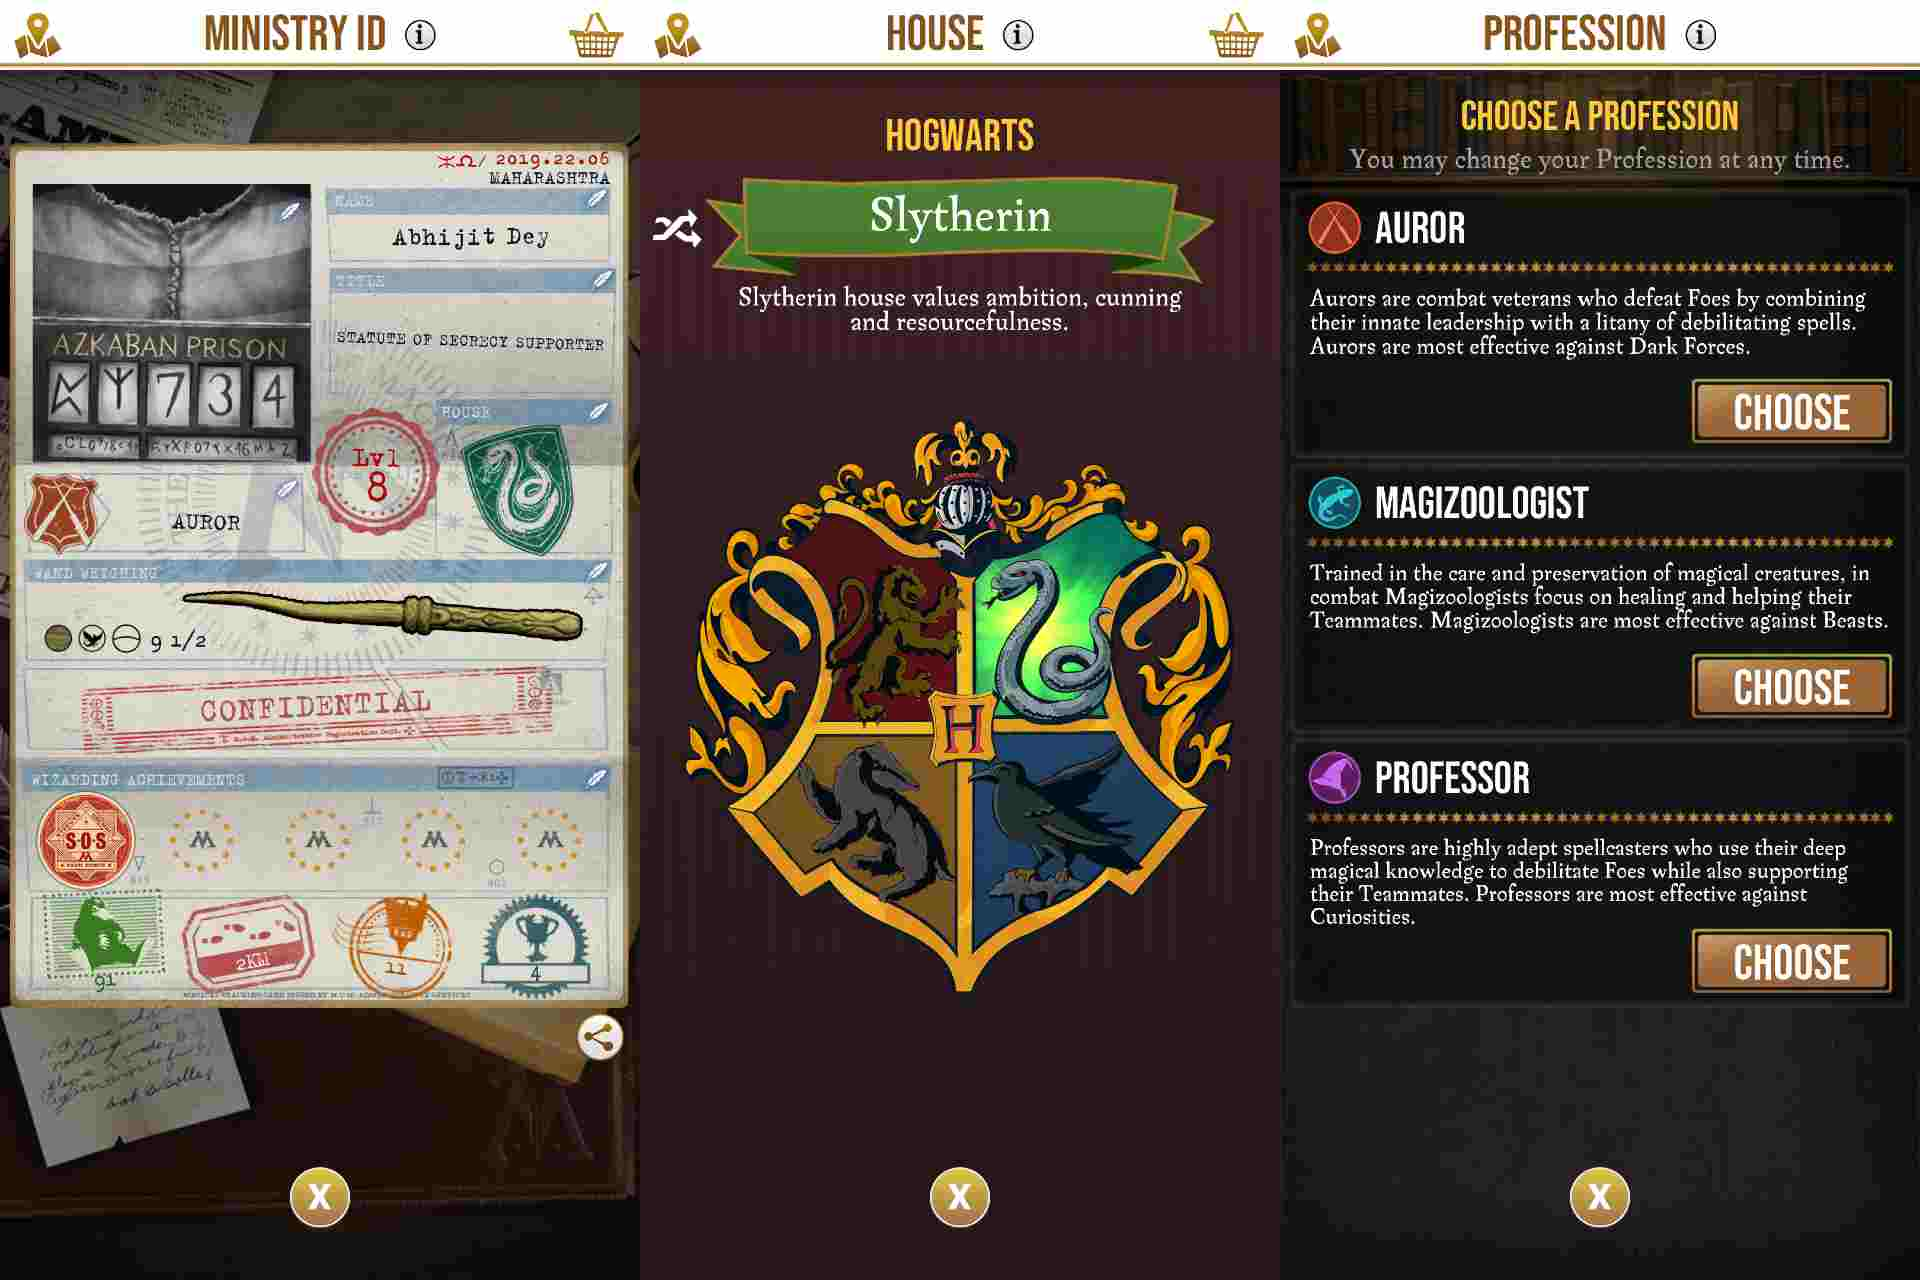 Harry Potter: Wizards Unite allows you to customise your own profile.